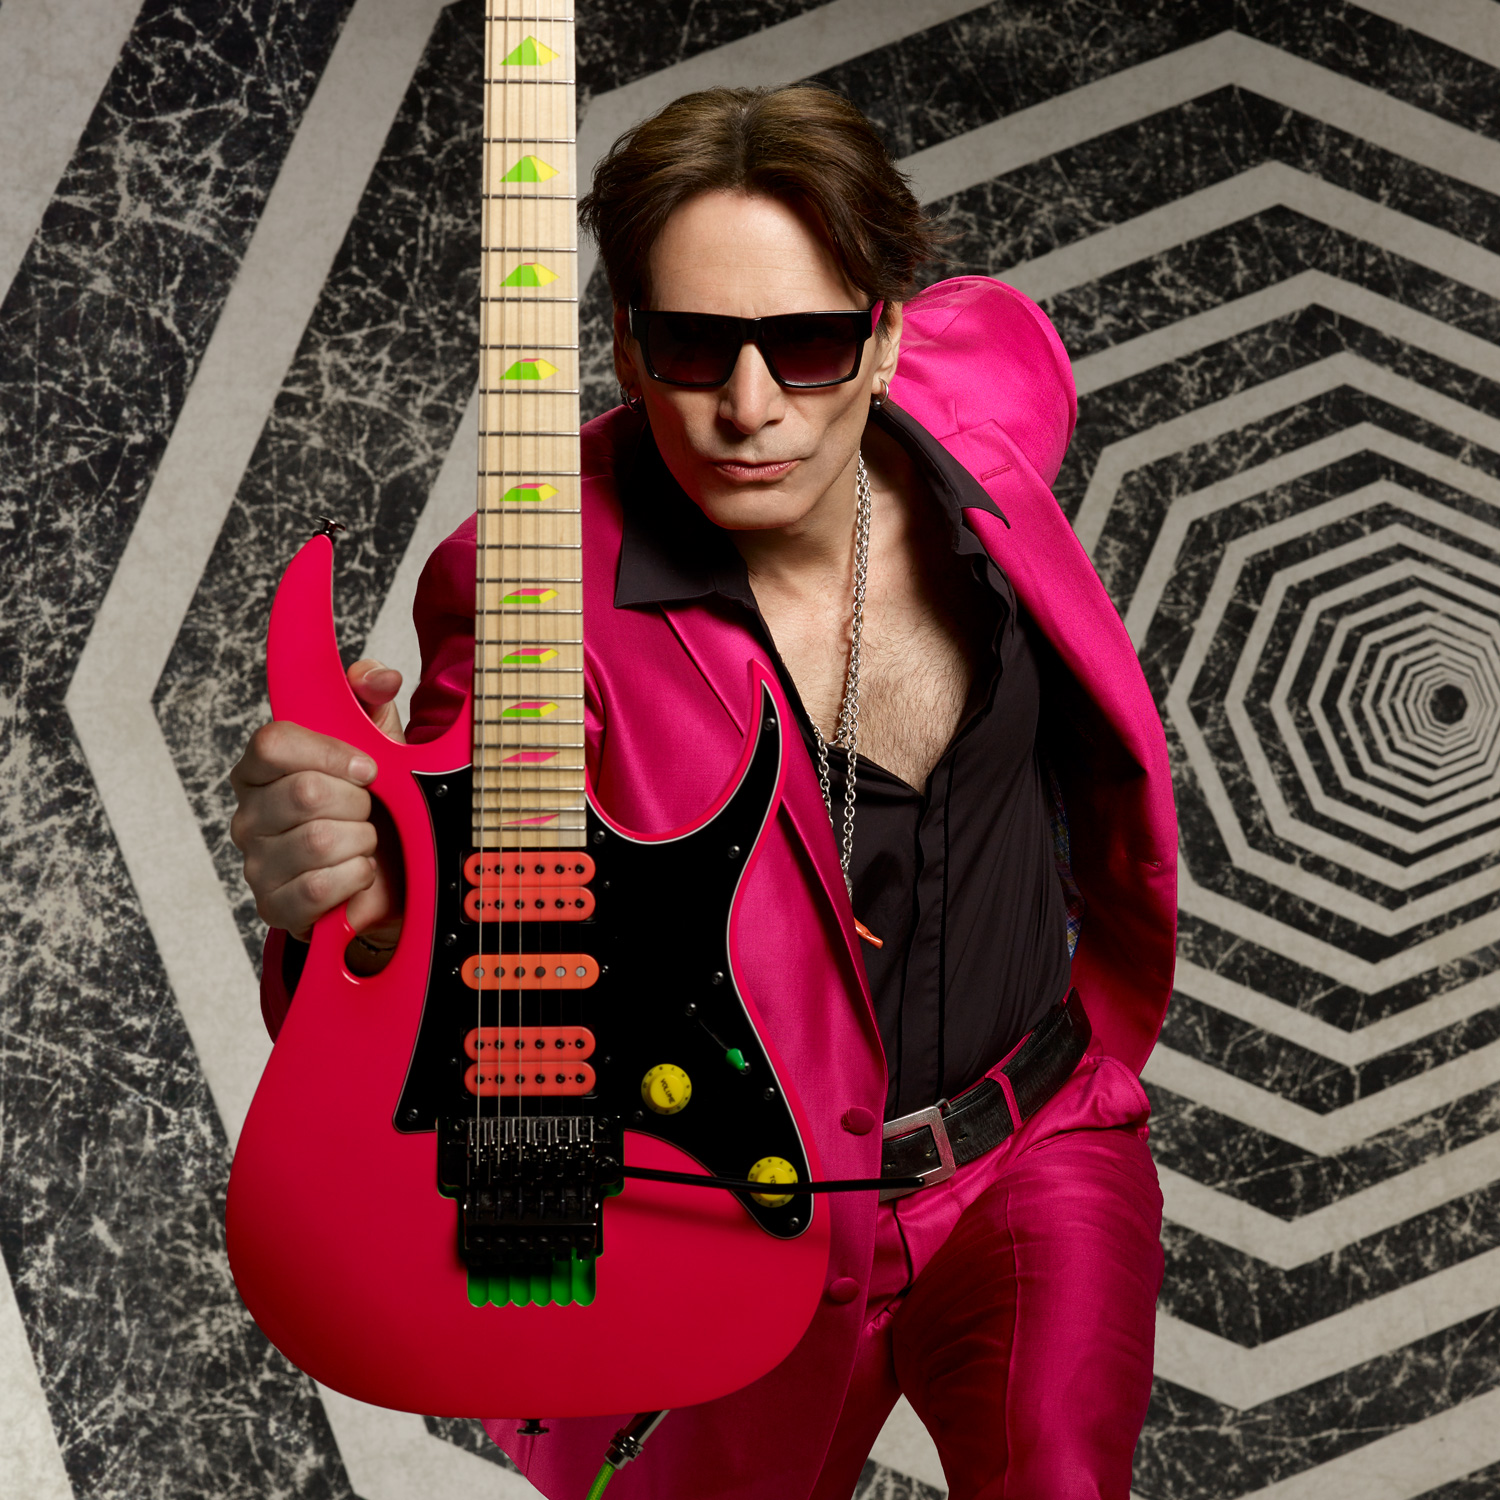 hight resolution of steve vai photo by larry dimarzio